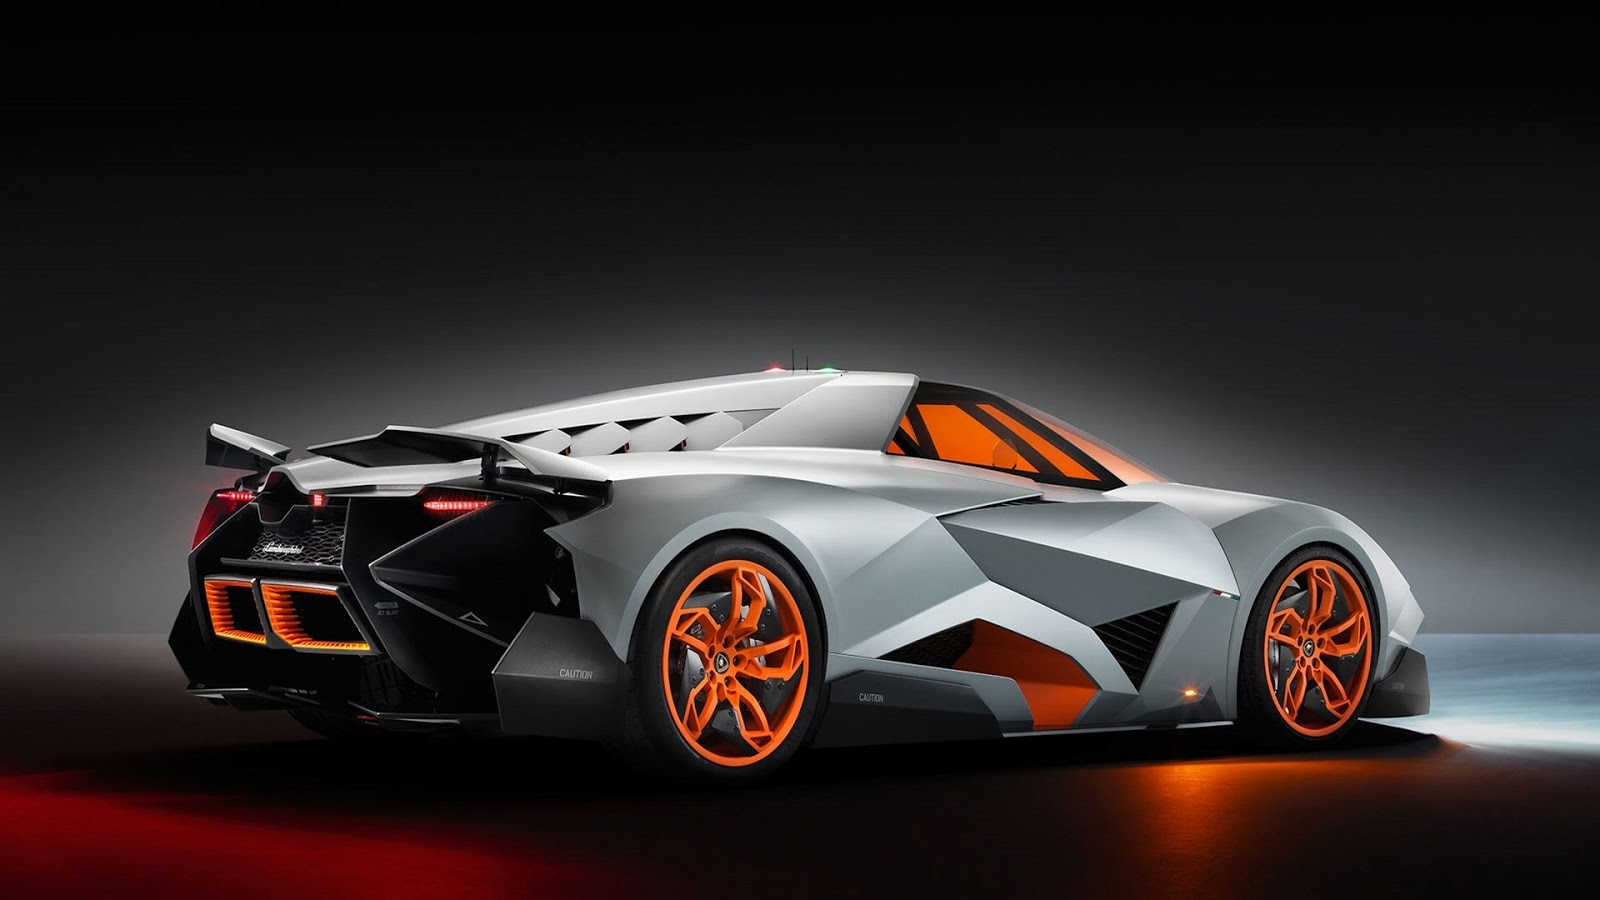 Lamborghini Egoista HD 1080p Resim Hd Wallpapers 1600x900